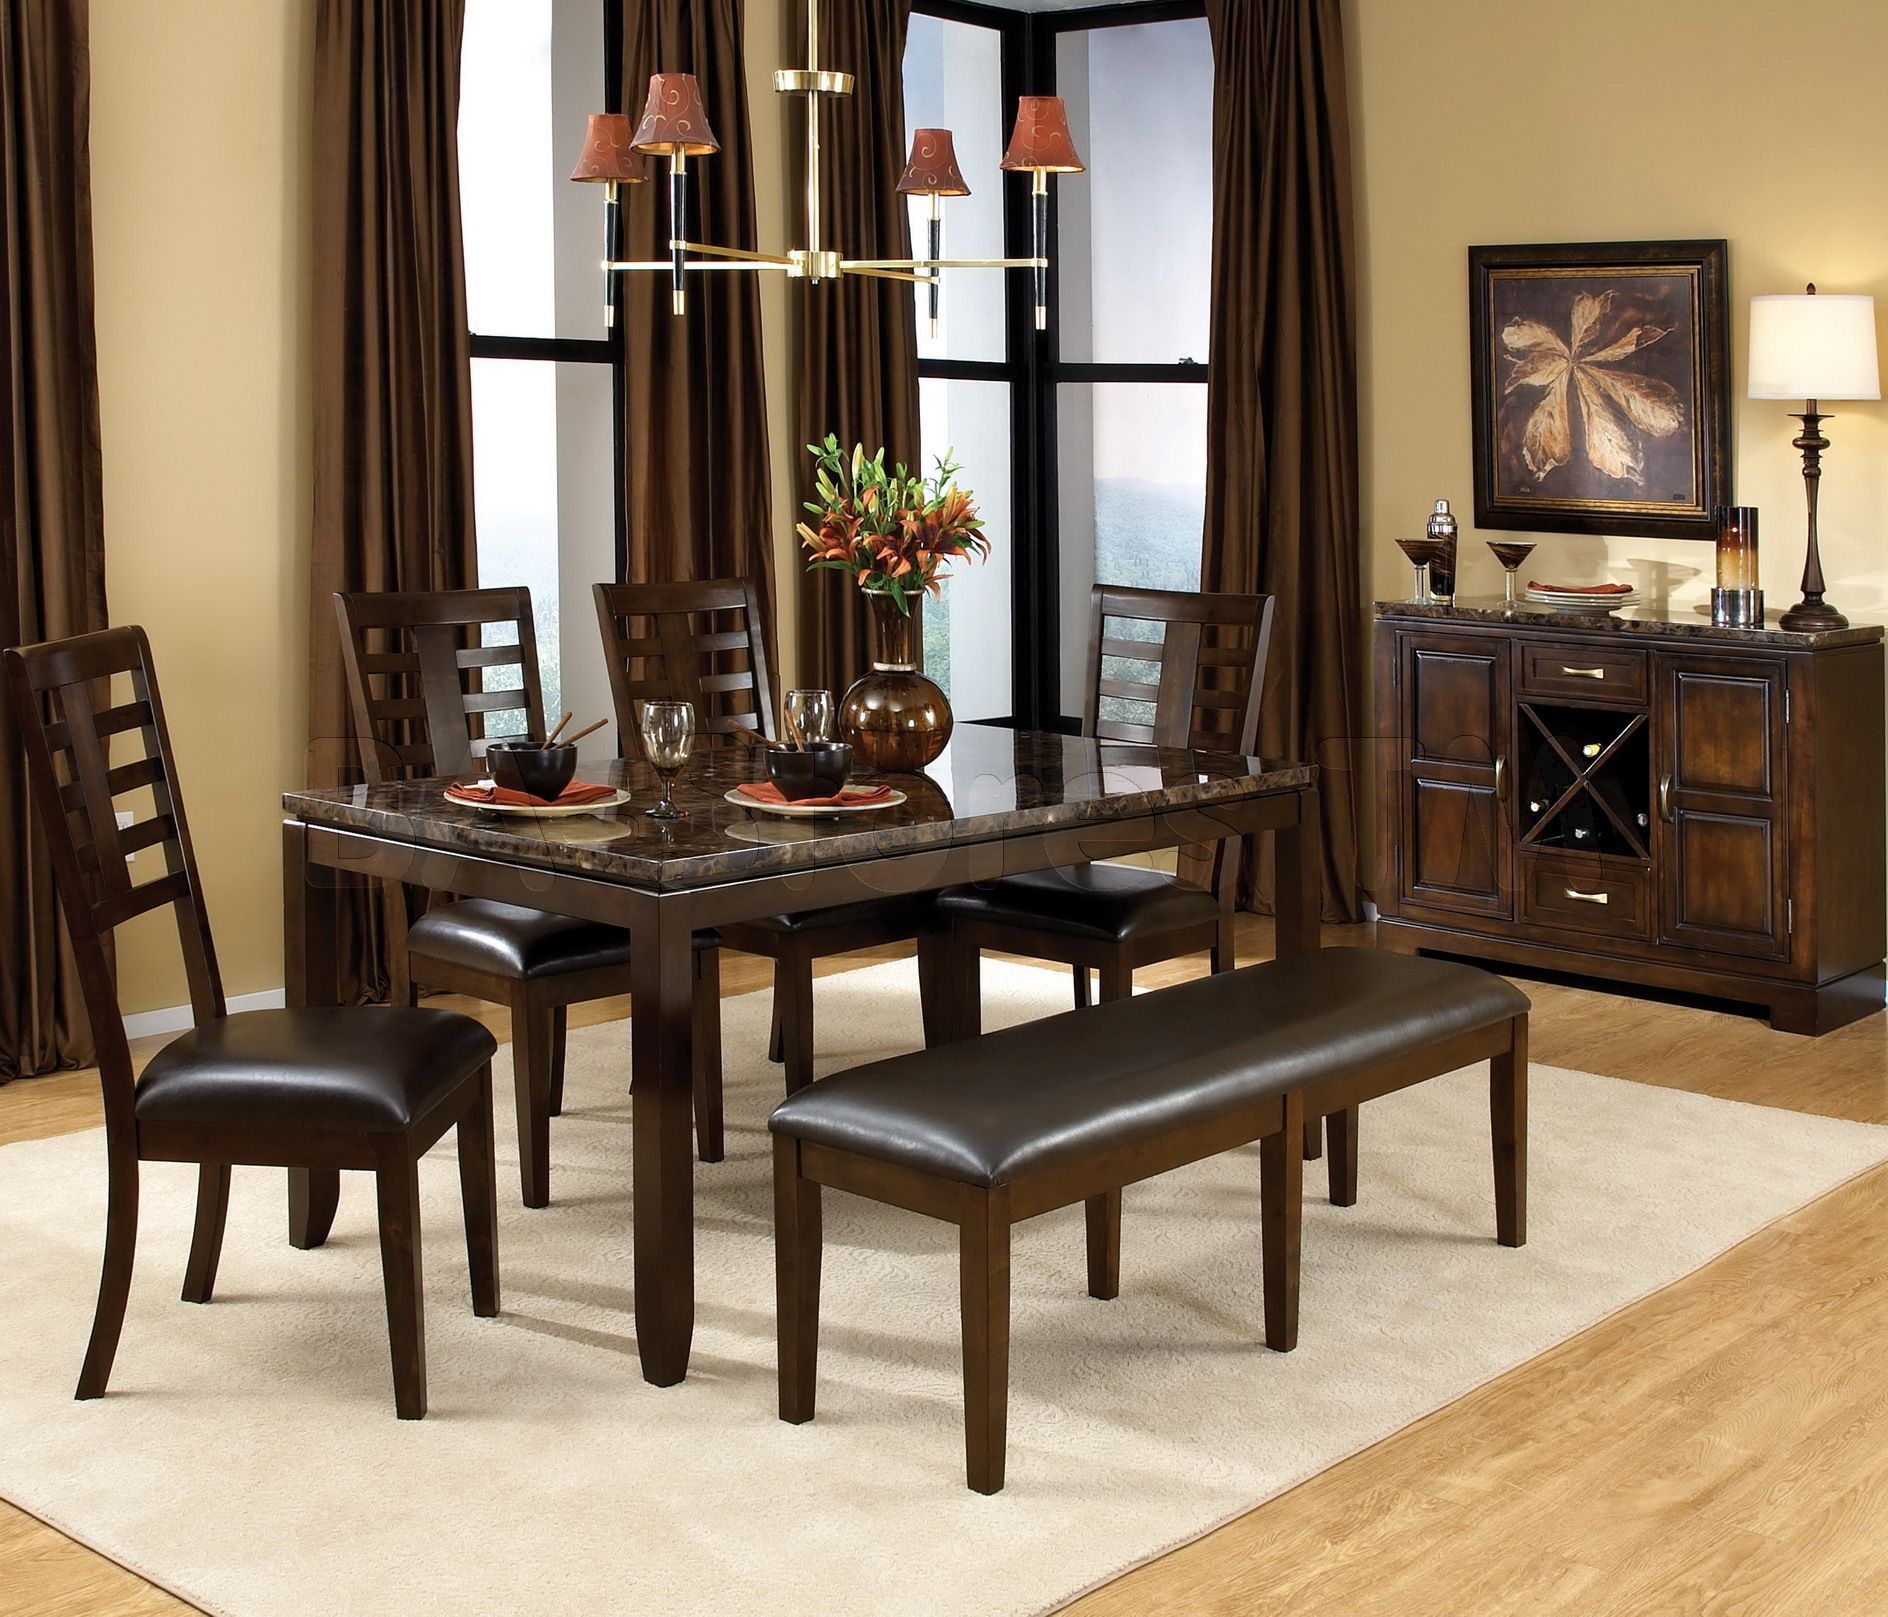 Marvelous Classic Ikea Dining Sets With Brown Color And Single Bench On  White Dining Rugs Over